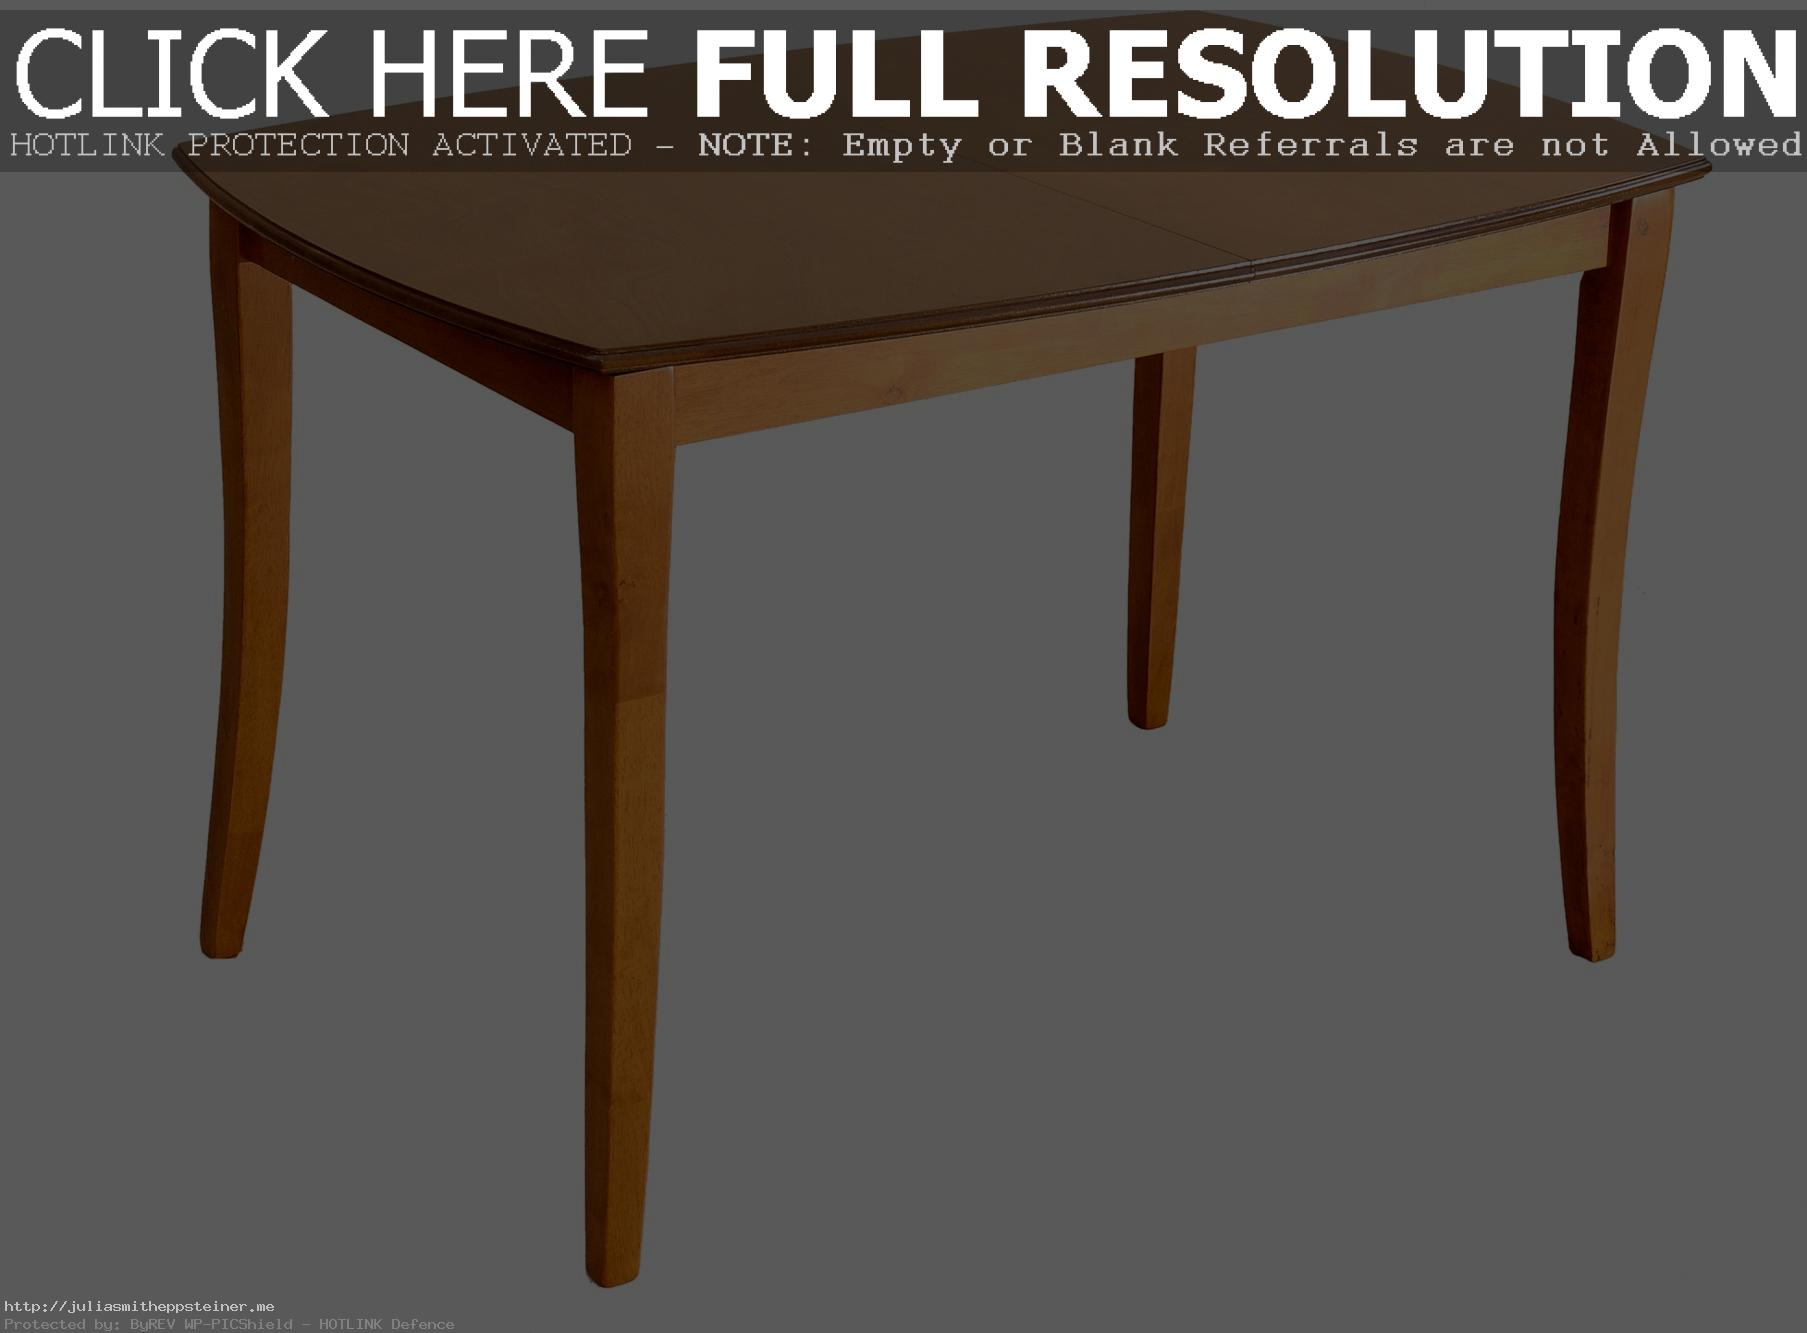 Download Table Free PNG Photo Images And Clipart FreePNGImg Cool ClipartLook.com